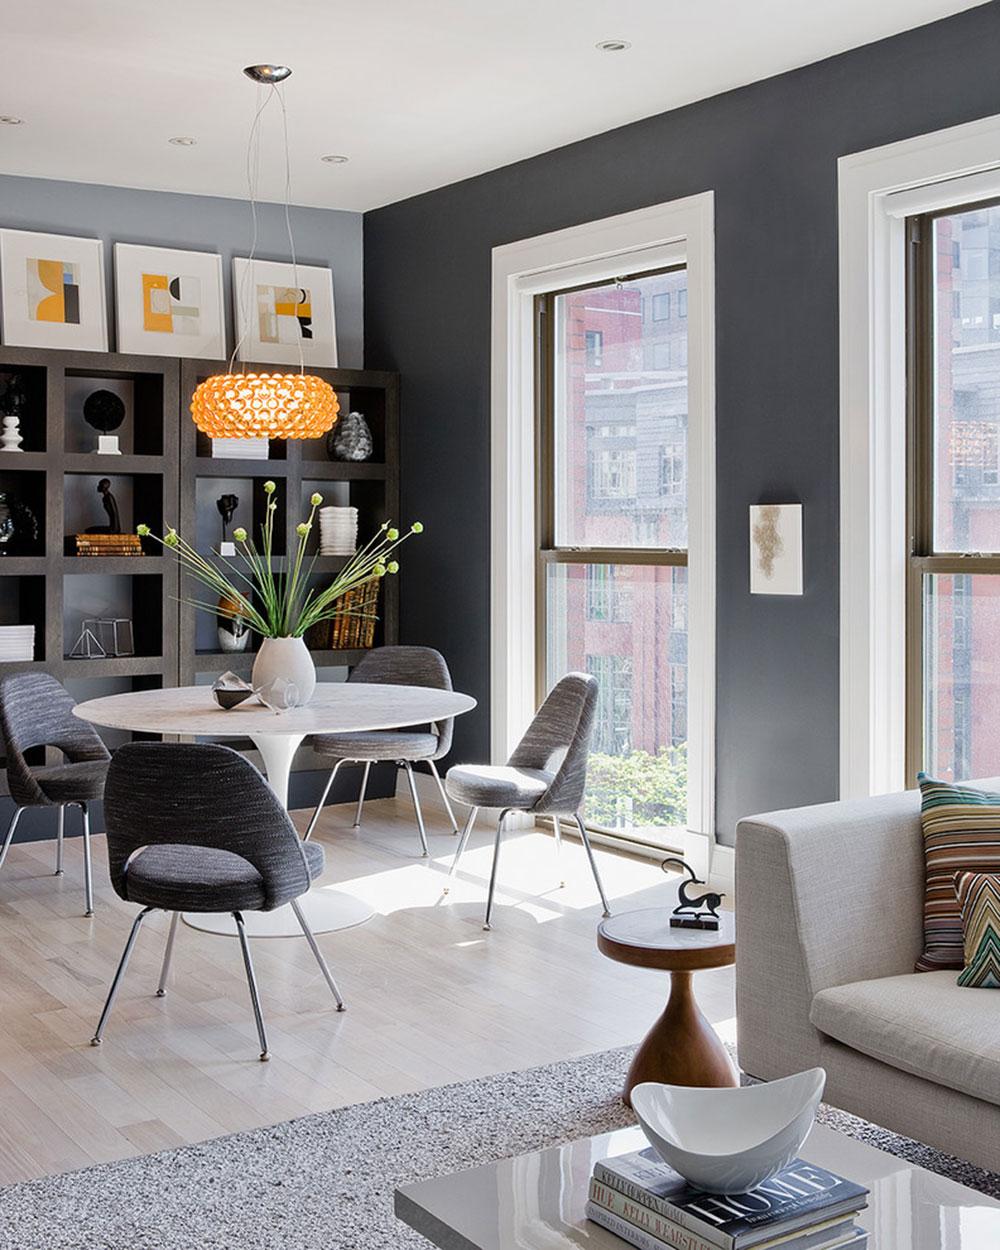 Tips For Decorating A Room With Two Tone